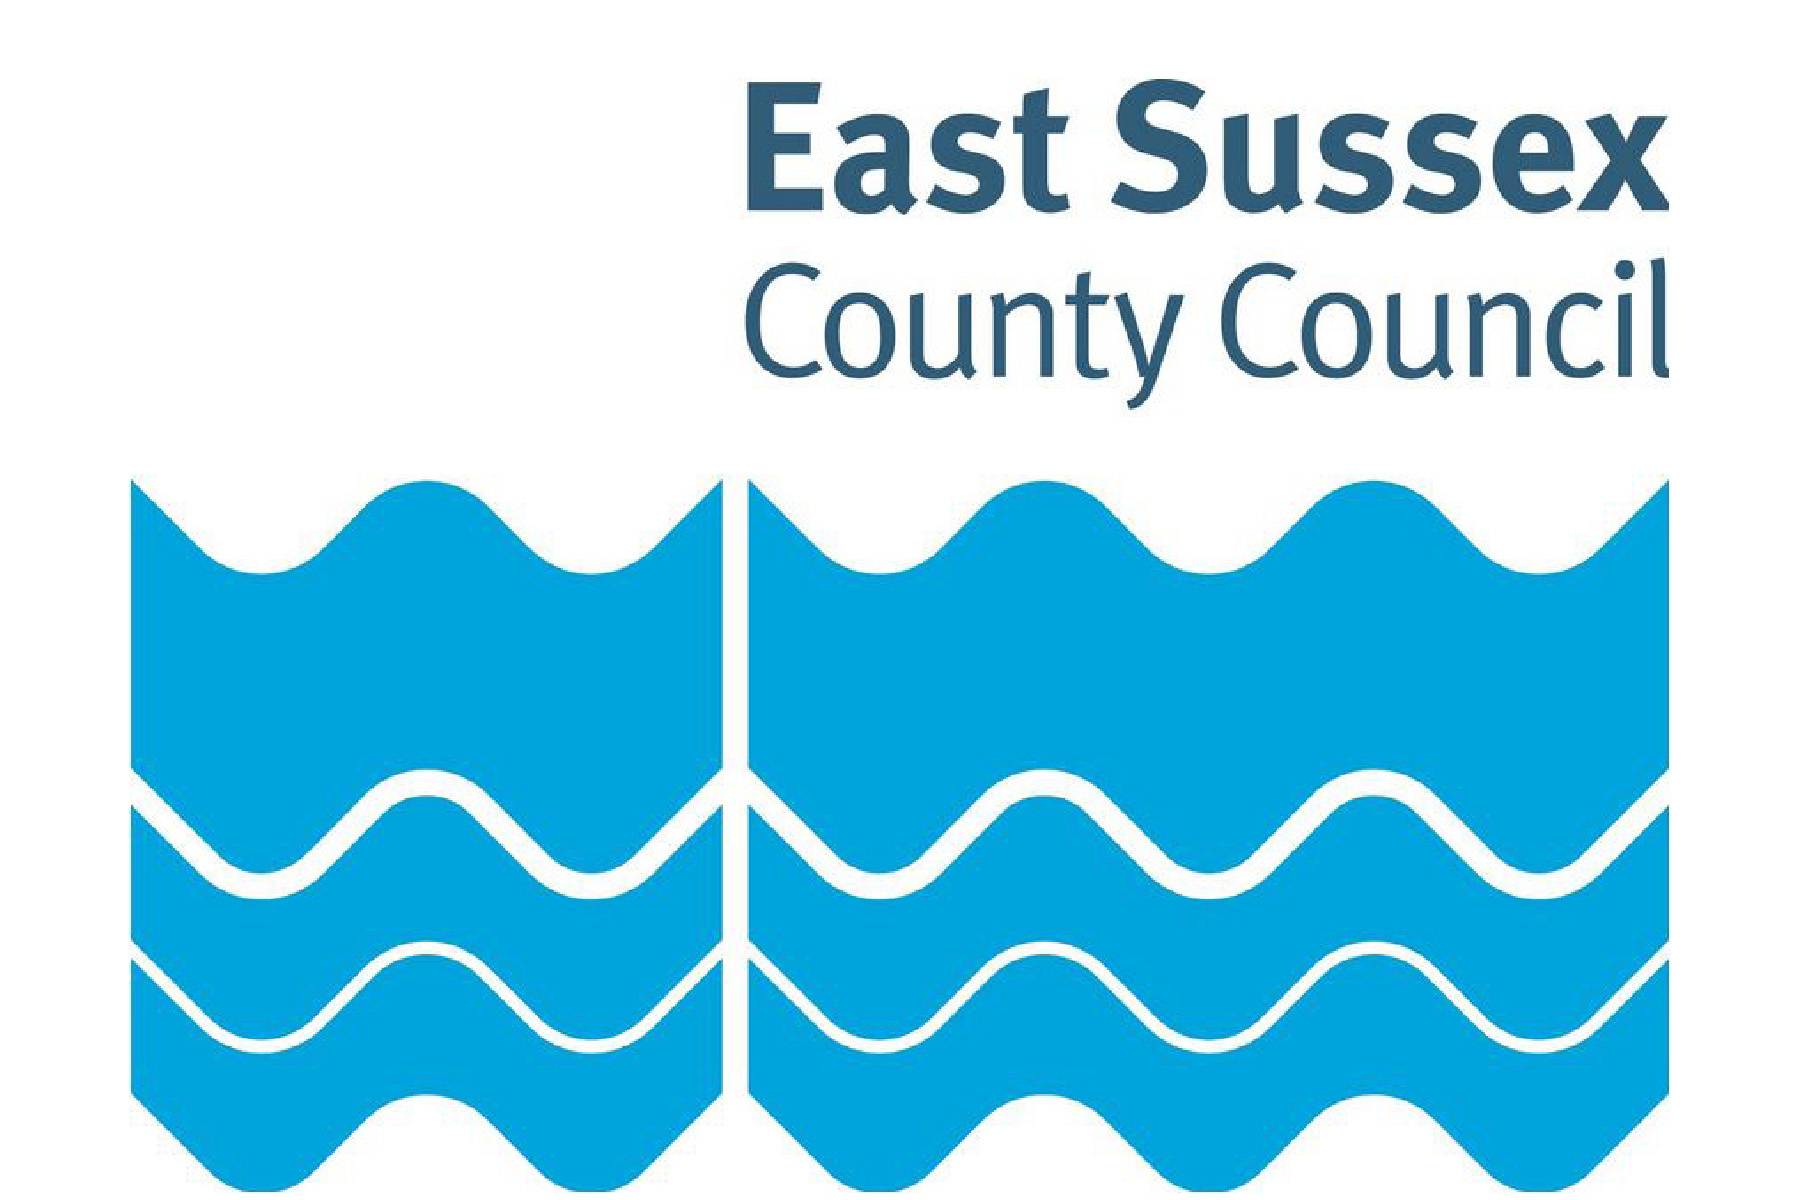 east_sussex_county_council.jpg